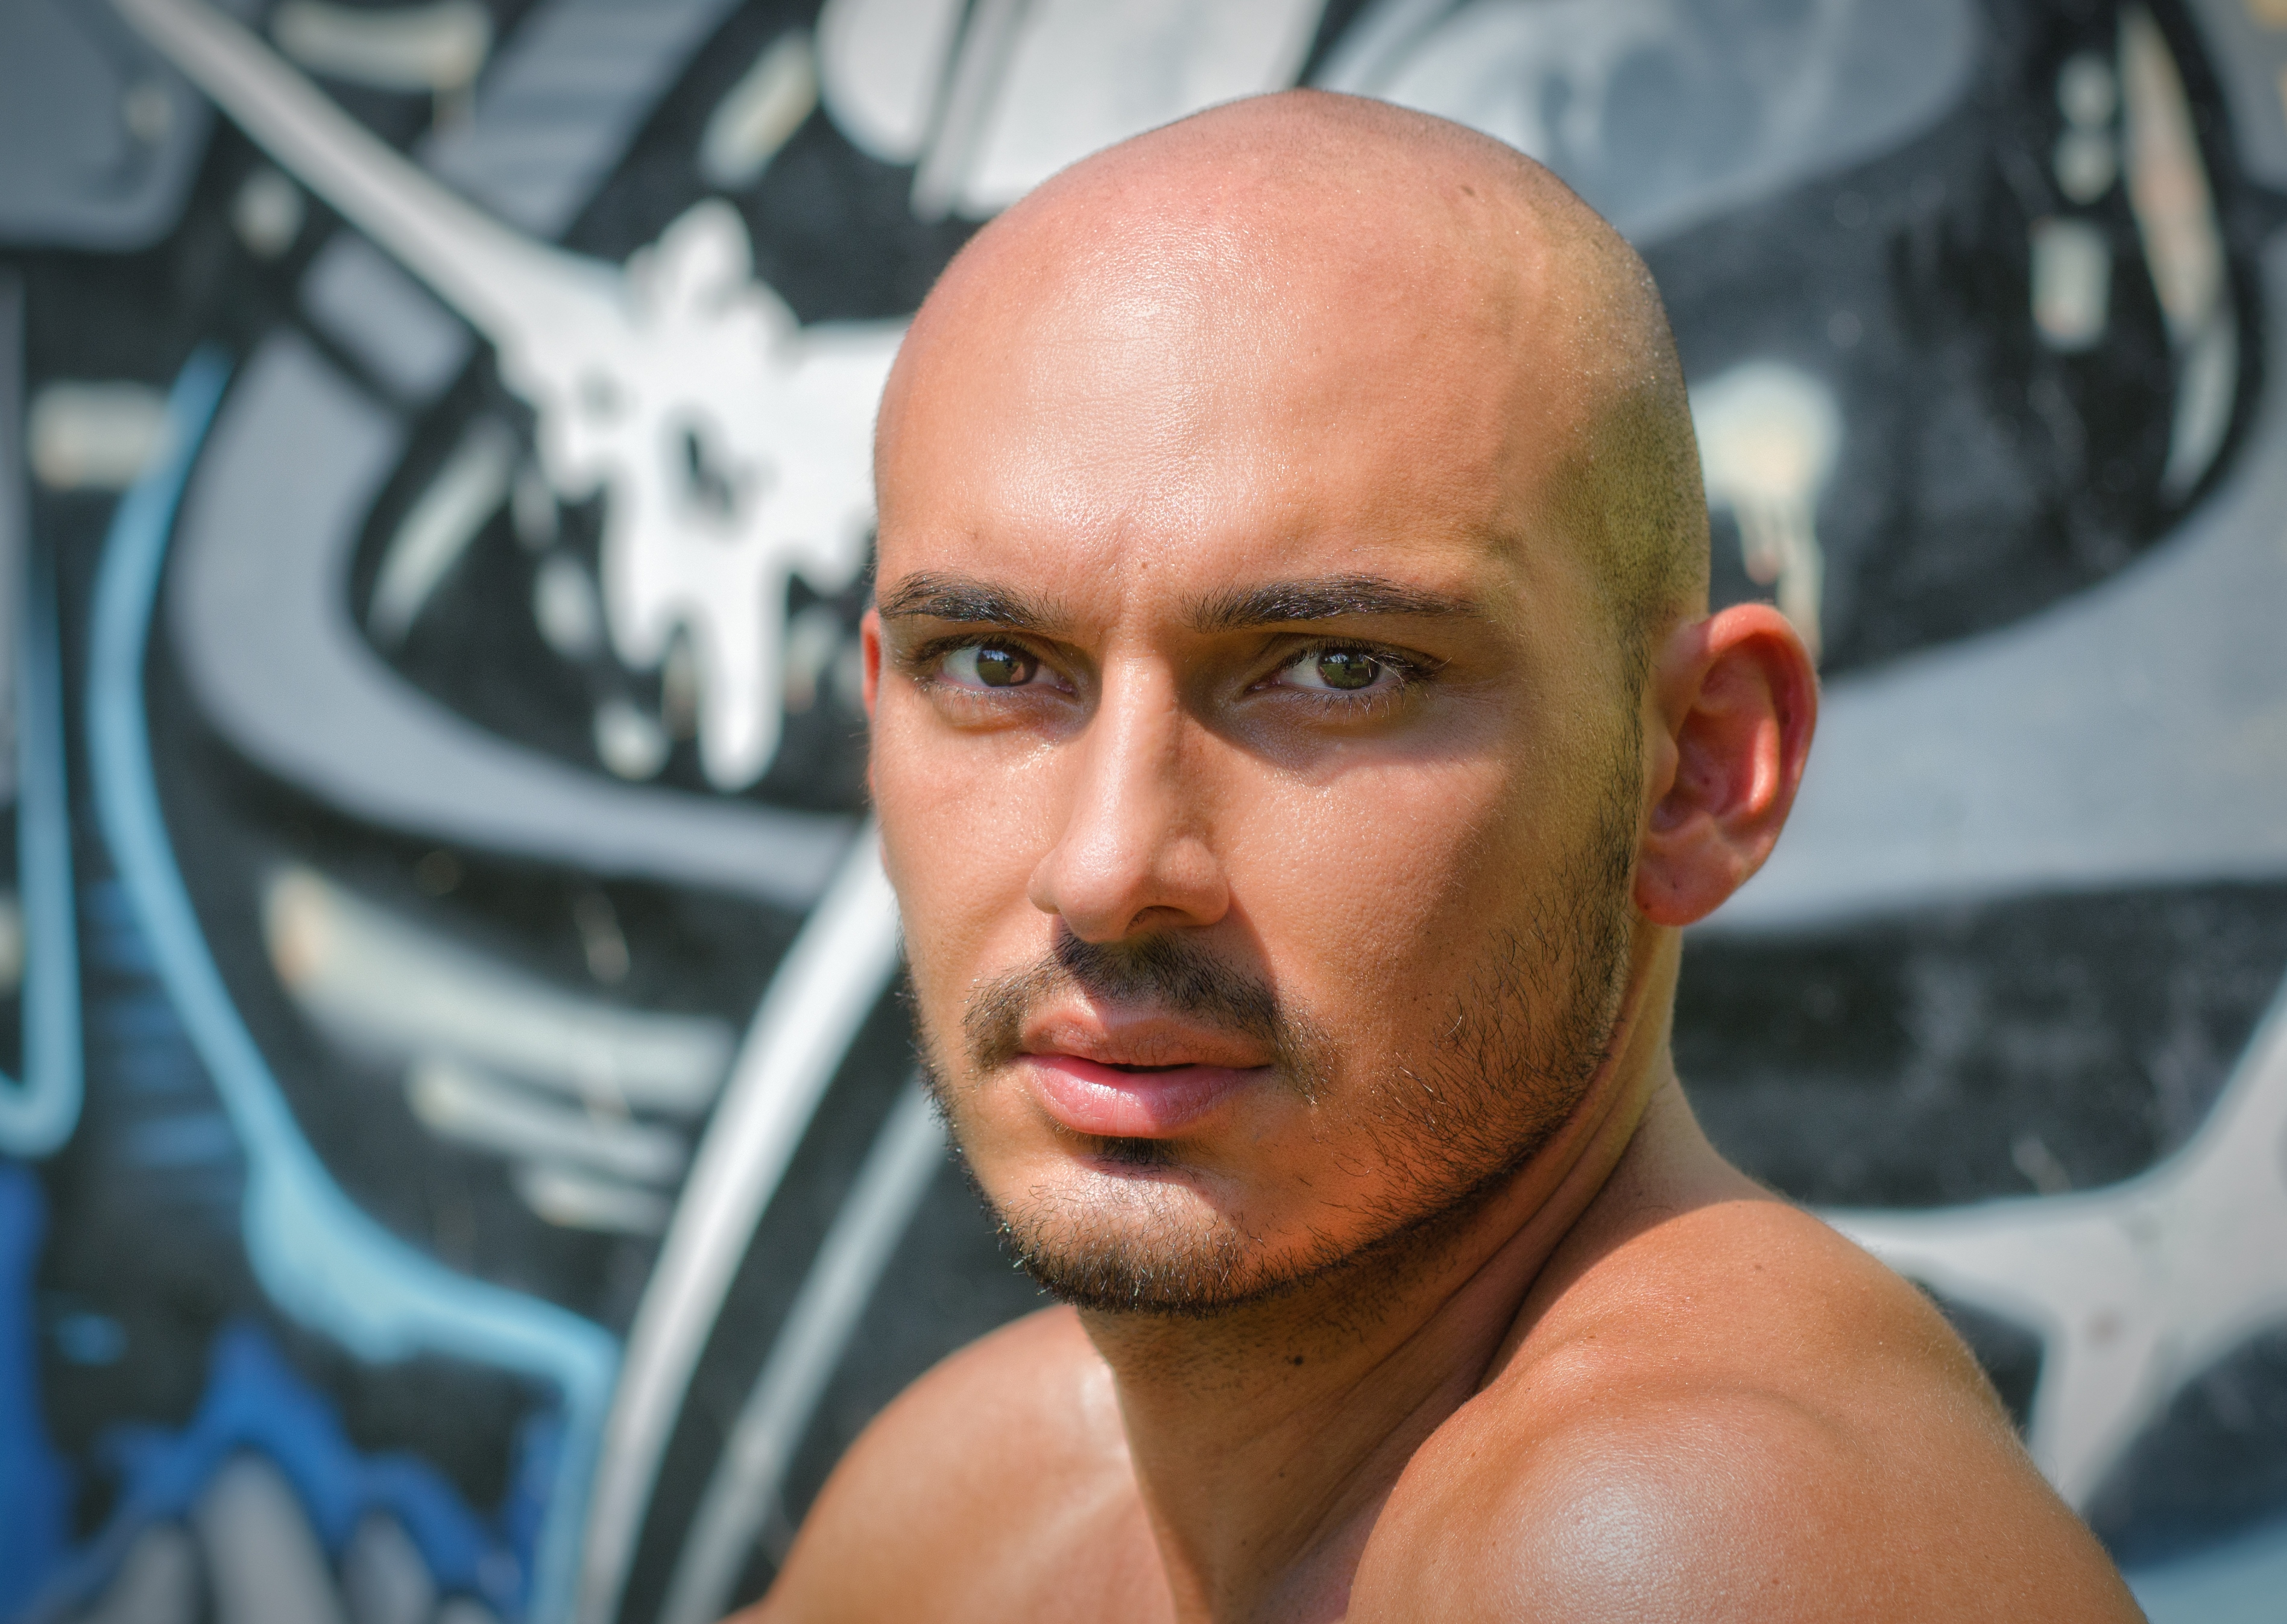 Pimples on Bald Head: Causes and Solutions